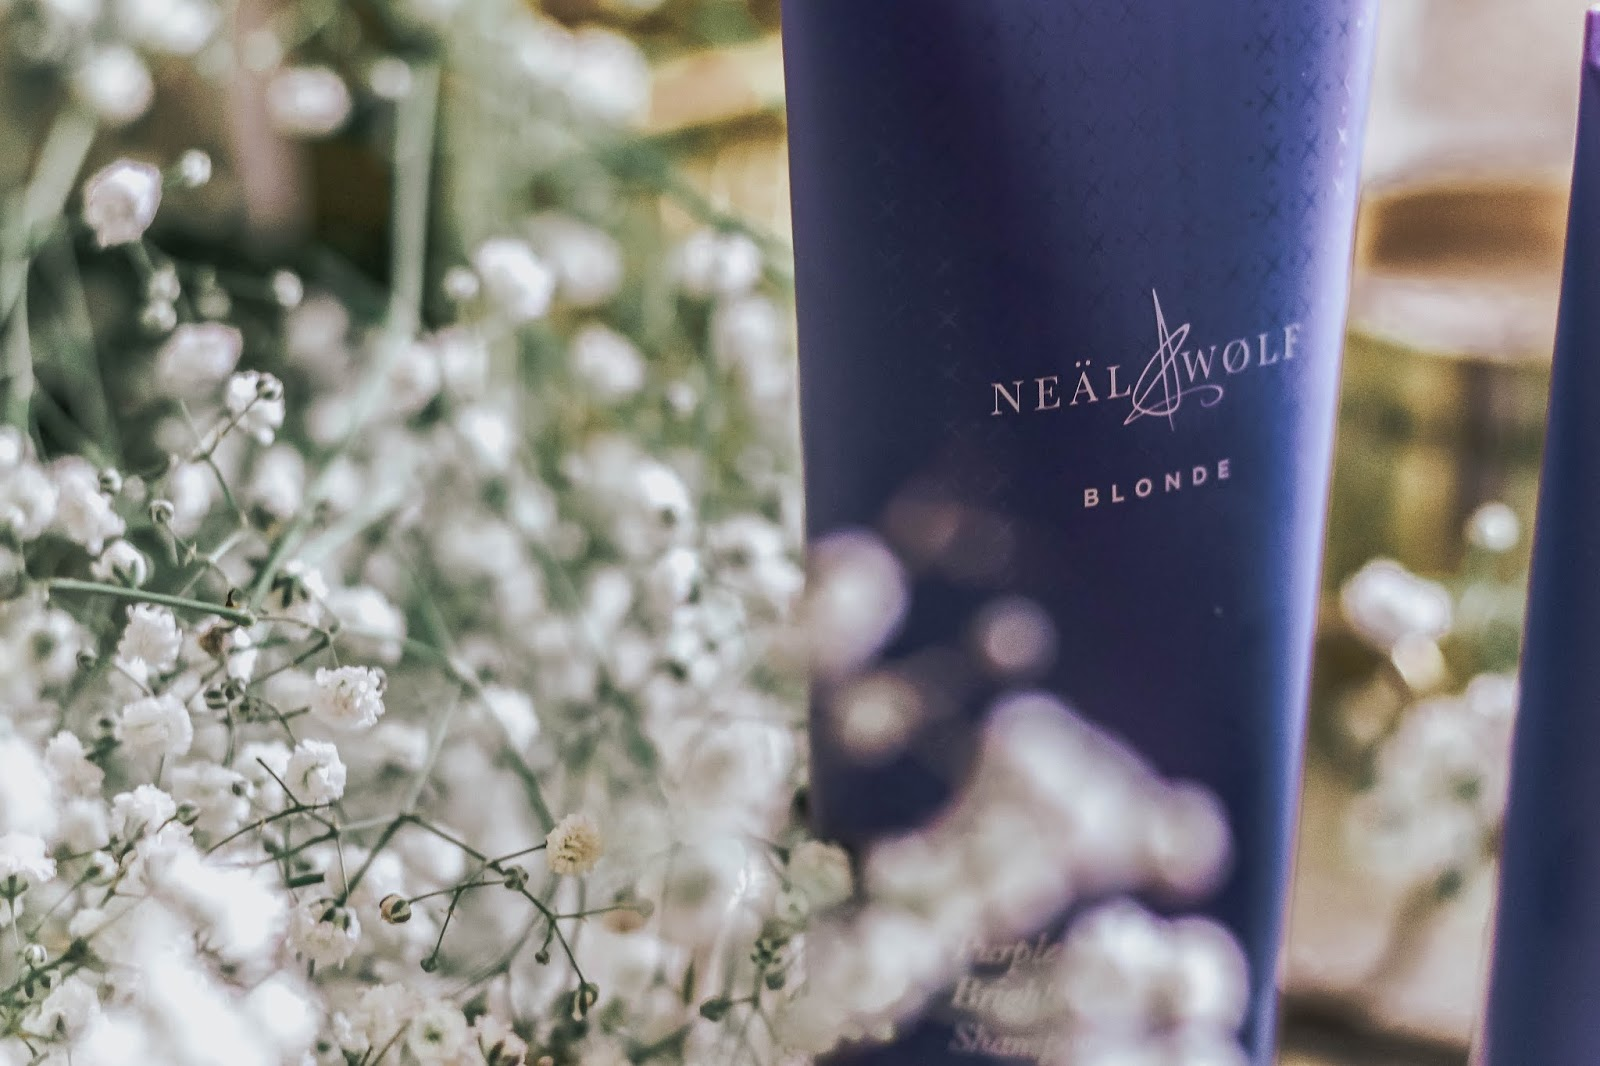 Cruelty Free Neal and Wolf Shampoo